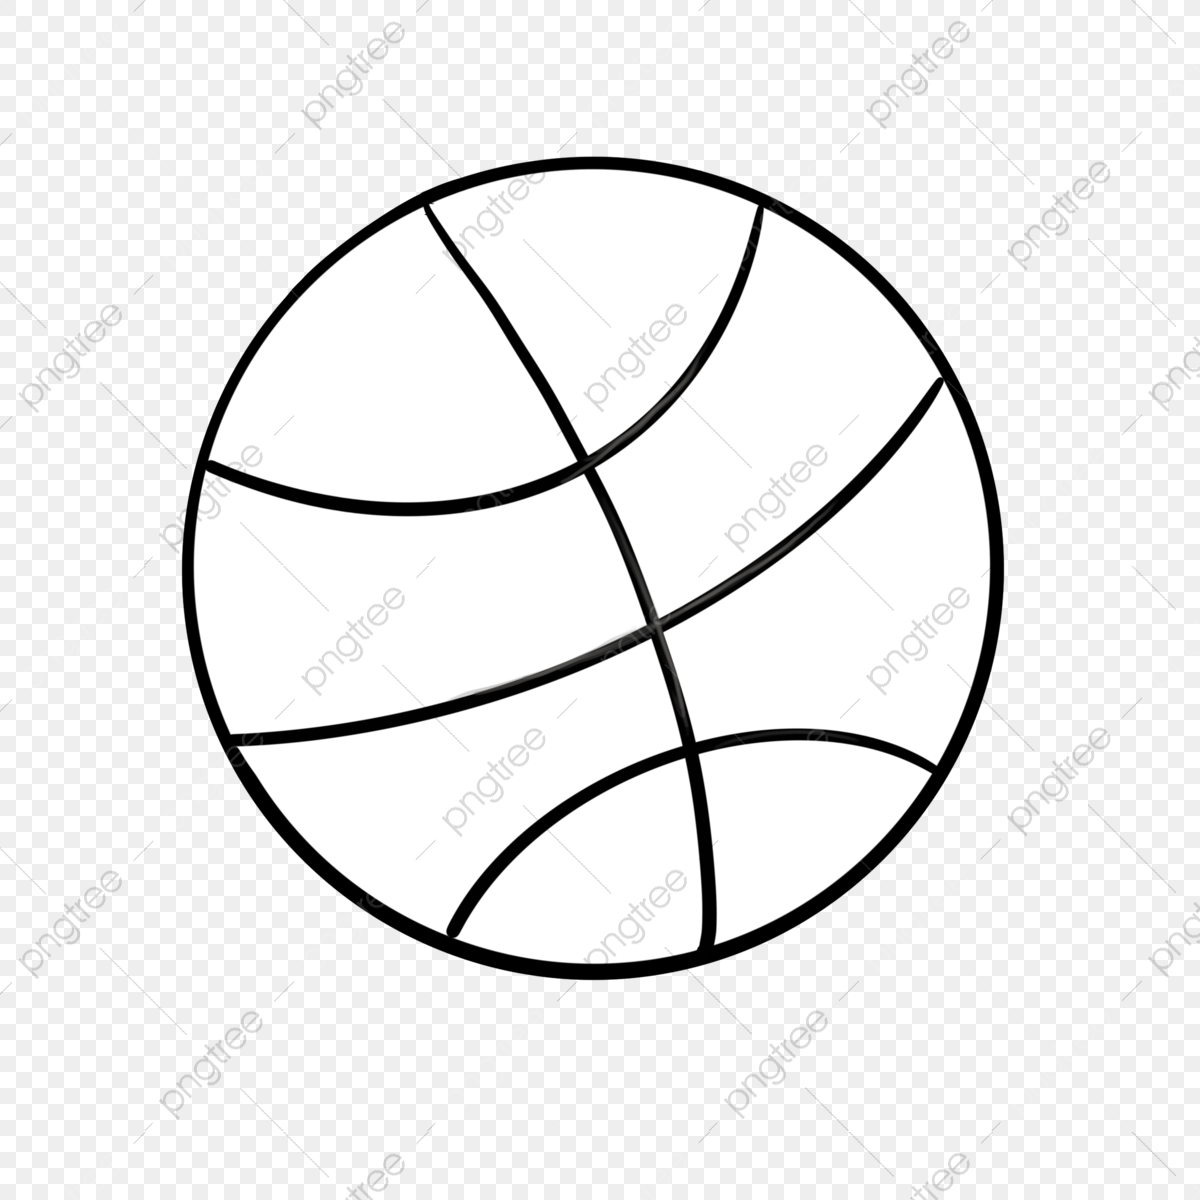 Black And White Basketball Clipart Basketball Simple Clip Art Png Transparent Clipart Image And Psd File For Free Download